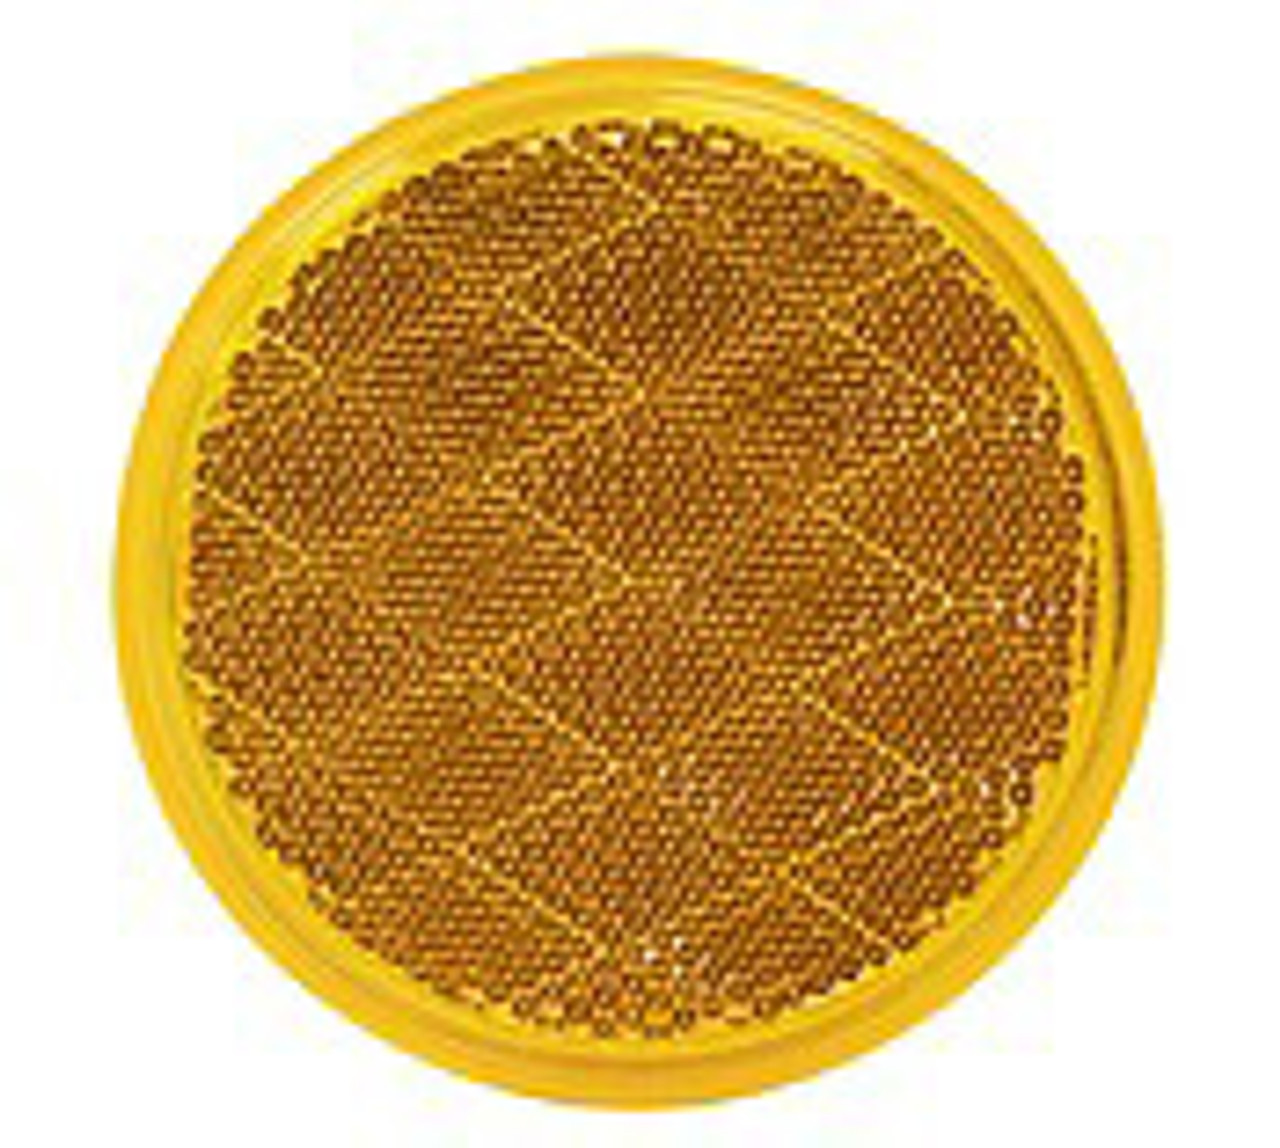 475A --- Round Amber Reflector - Quick Mount